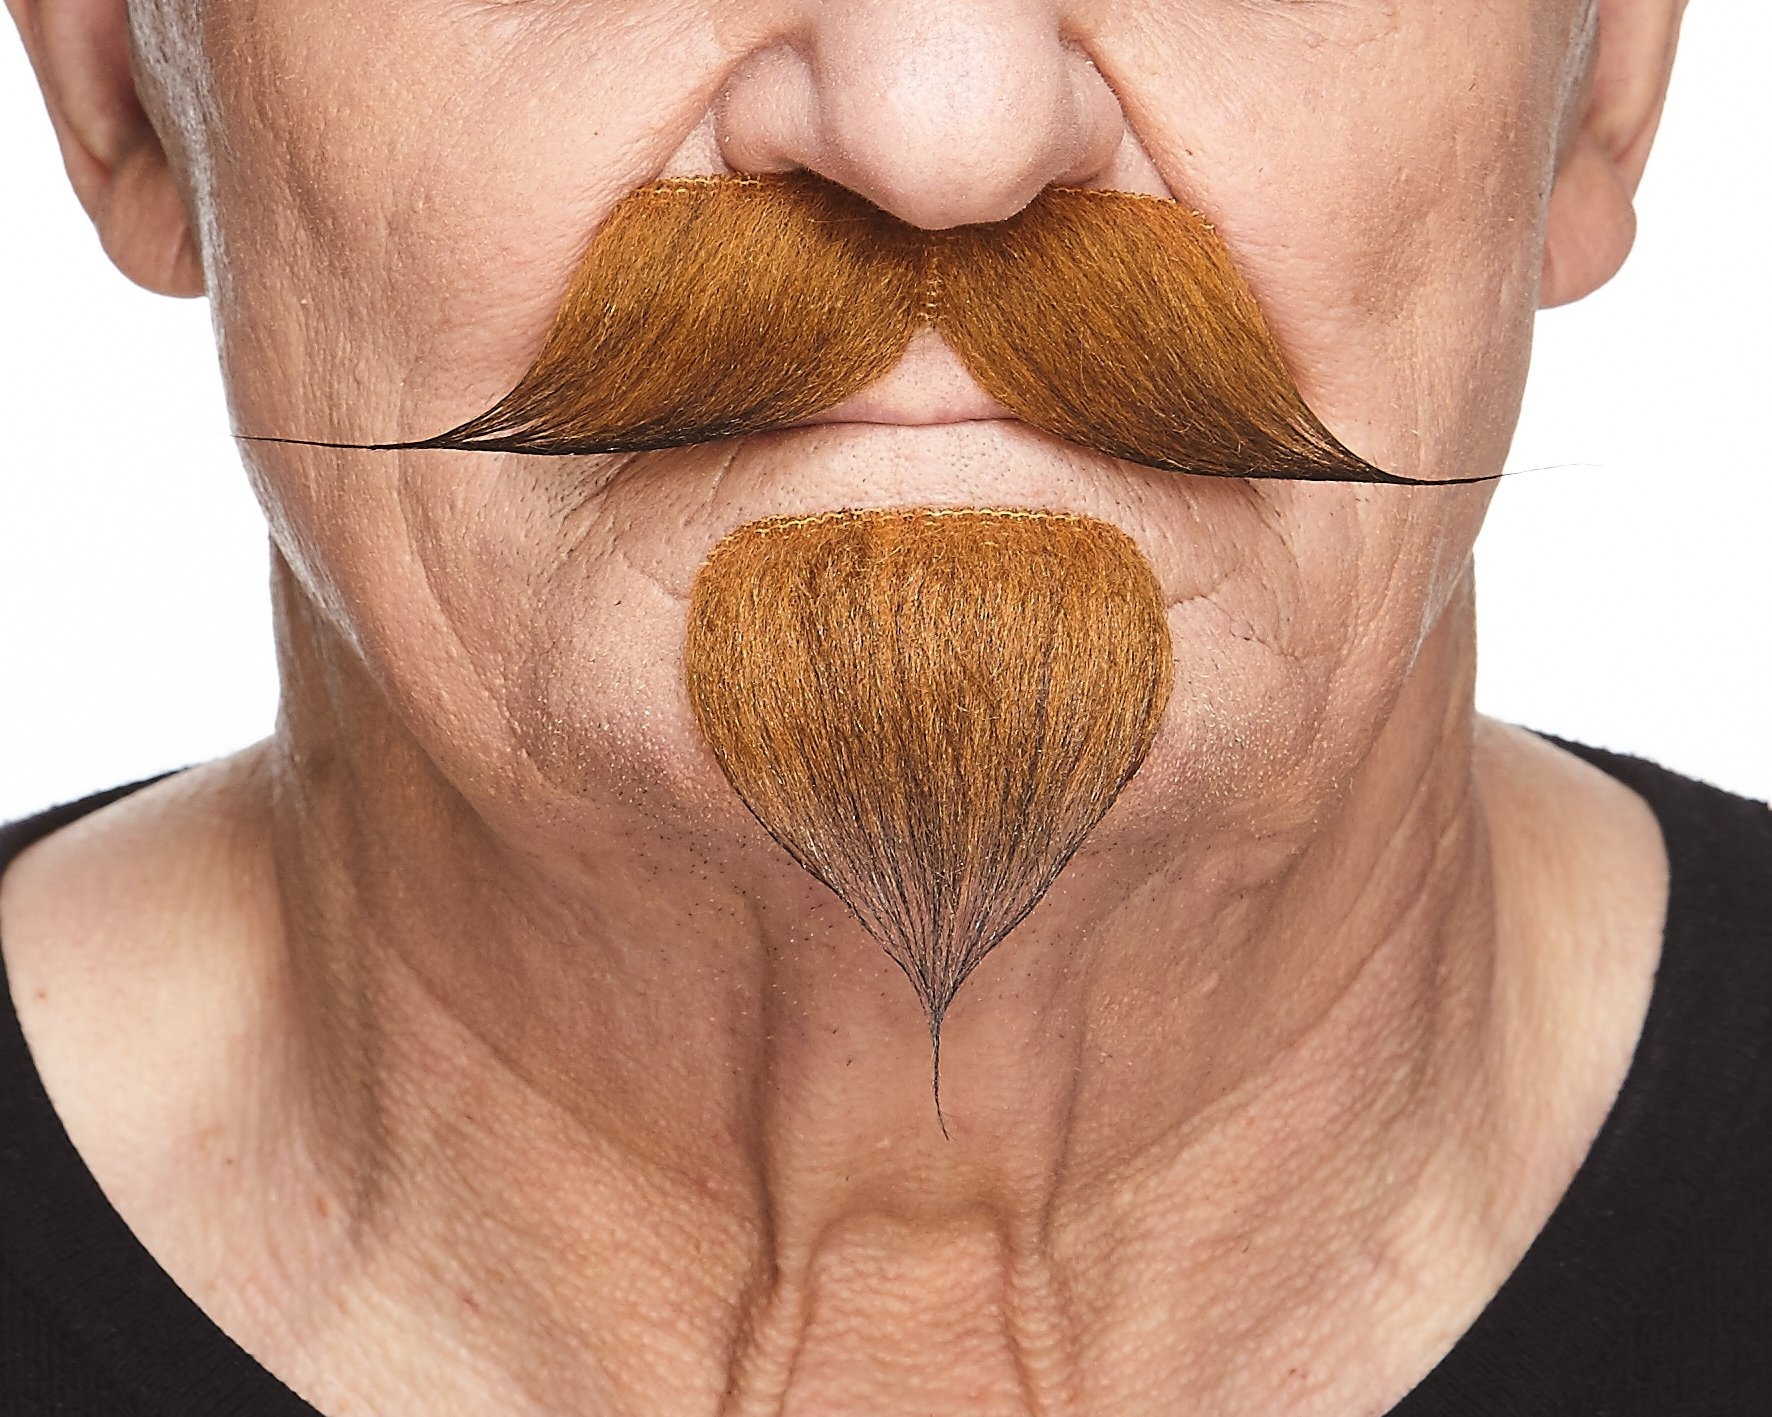 Mustaches Self Adhesive, Novelty, Fake Handlebar with a Goatee, Ginger Color